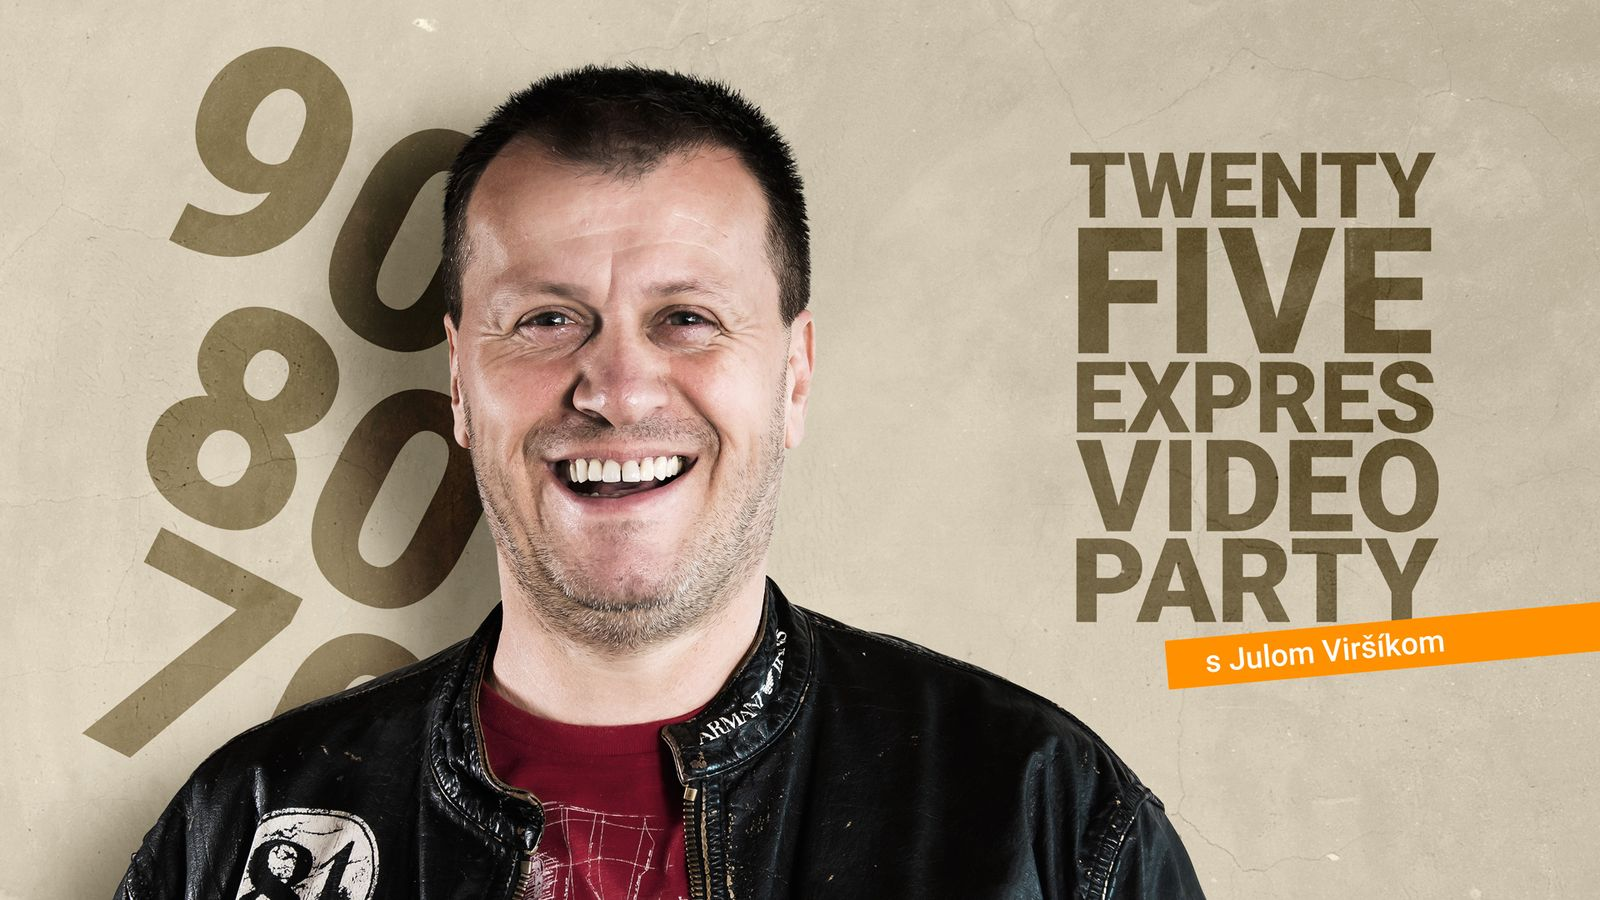 TWENTY FIVE EXPRES VIDEO PARTY